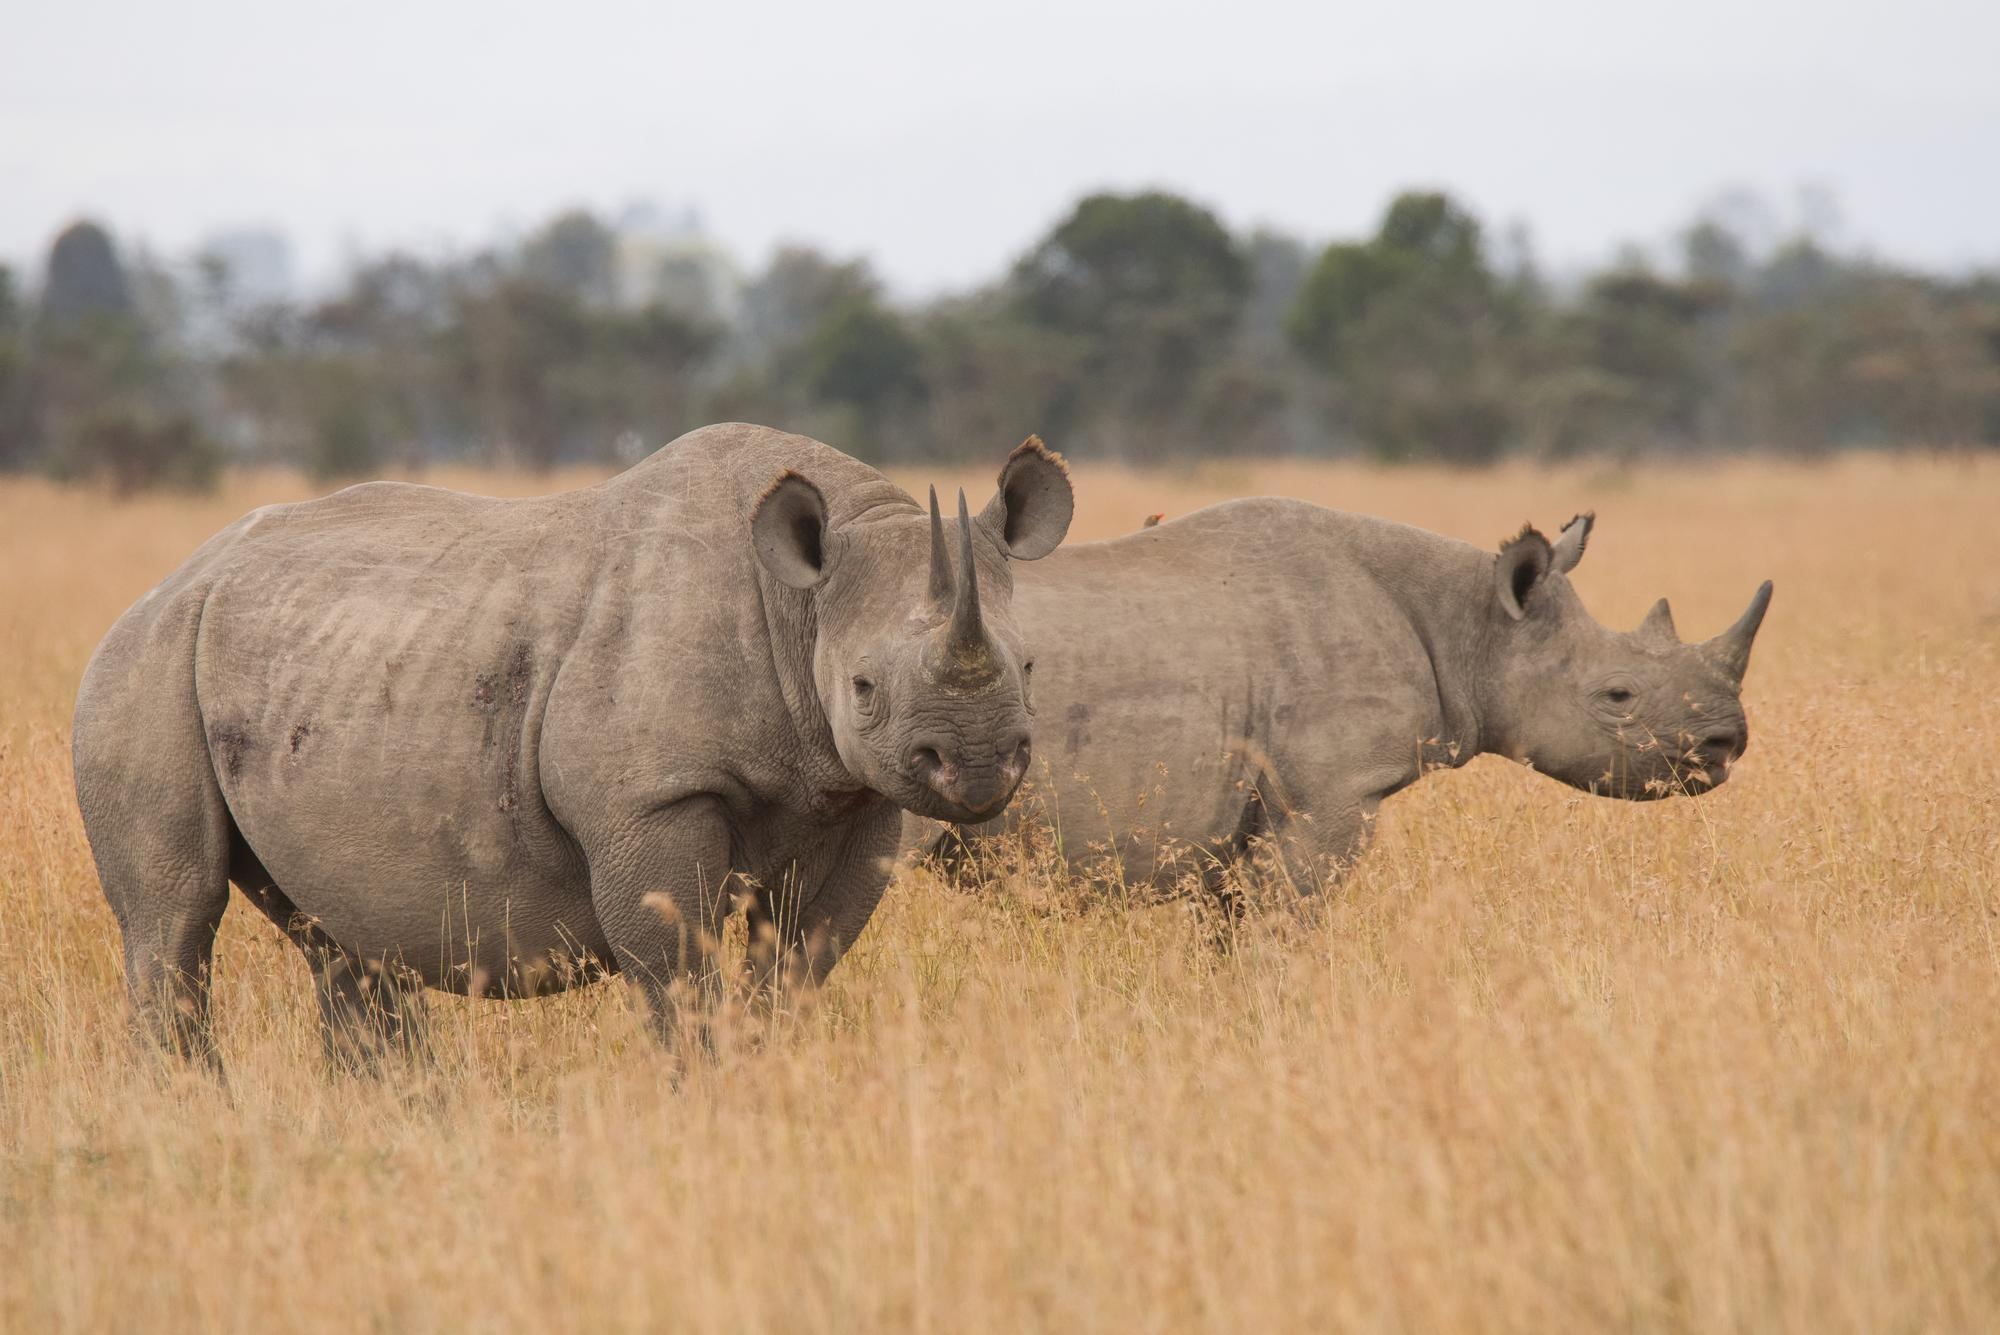 Protecting the Black Rhino of Ol Pejeta